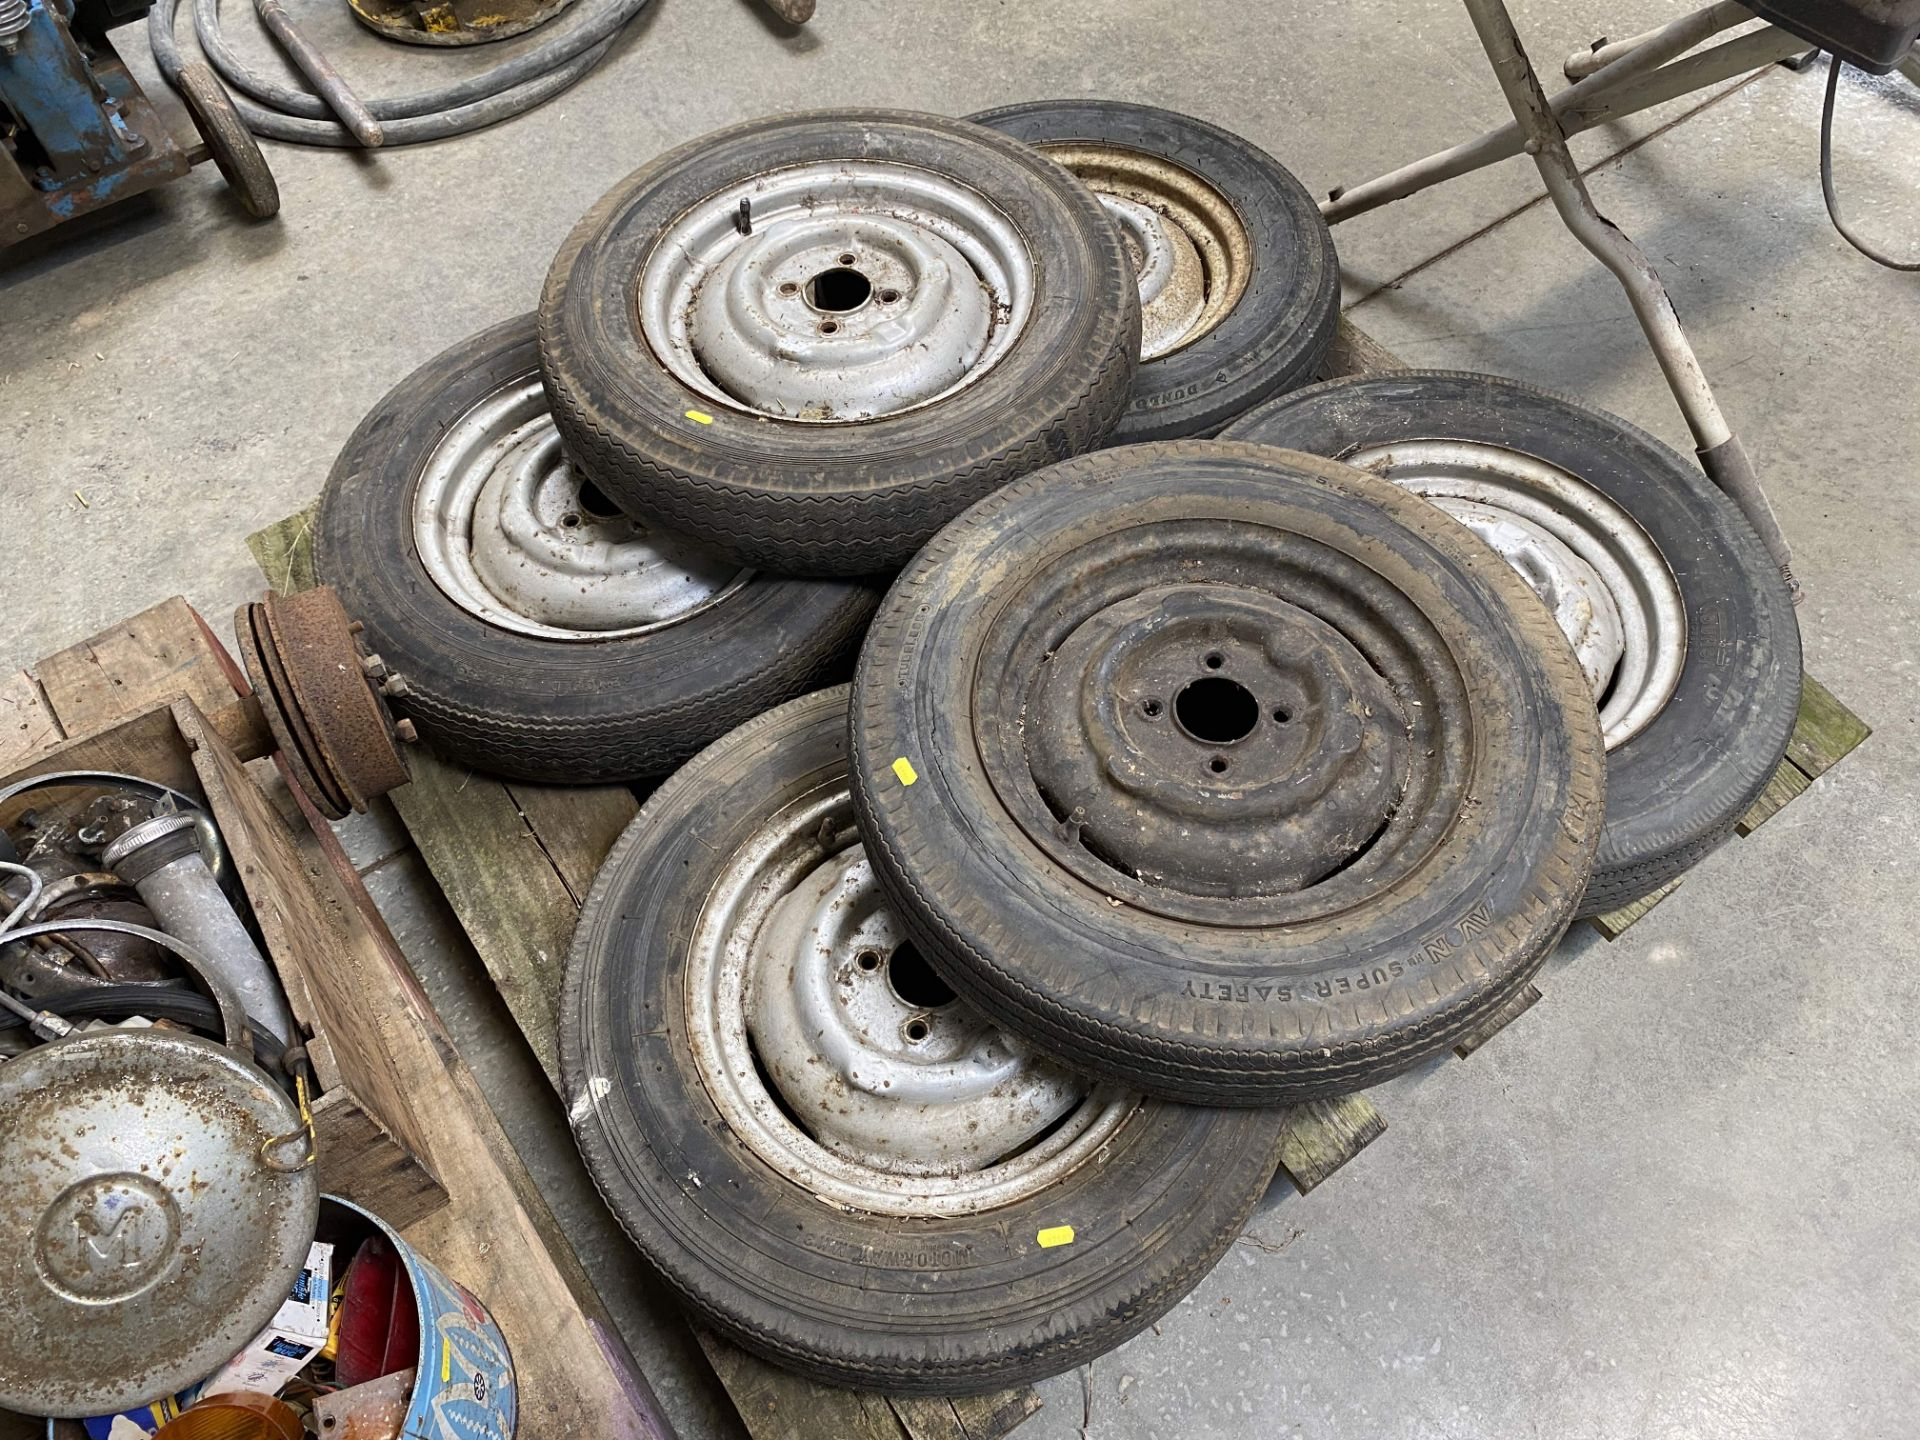 Lot 139 - Morris Minor rear axle, clutch, springs, wheels and tyres and various spares.